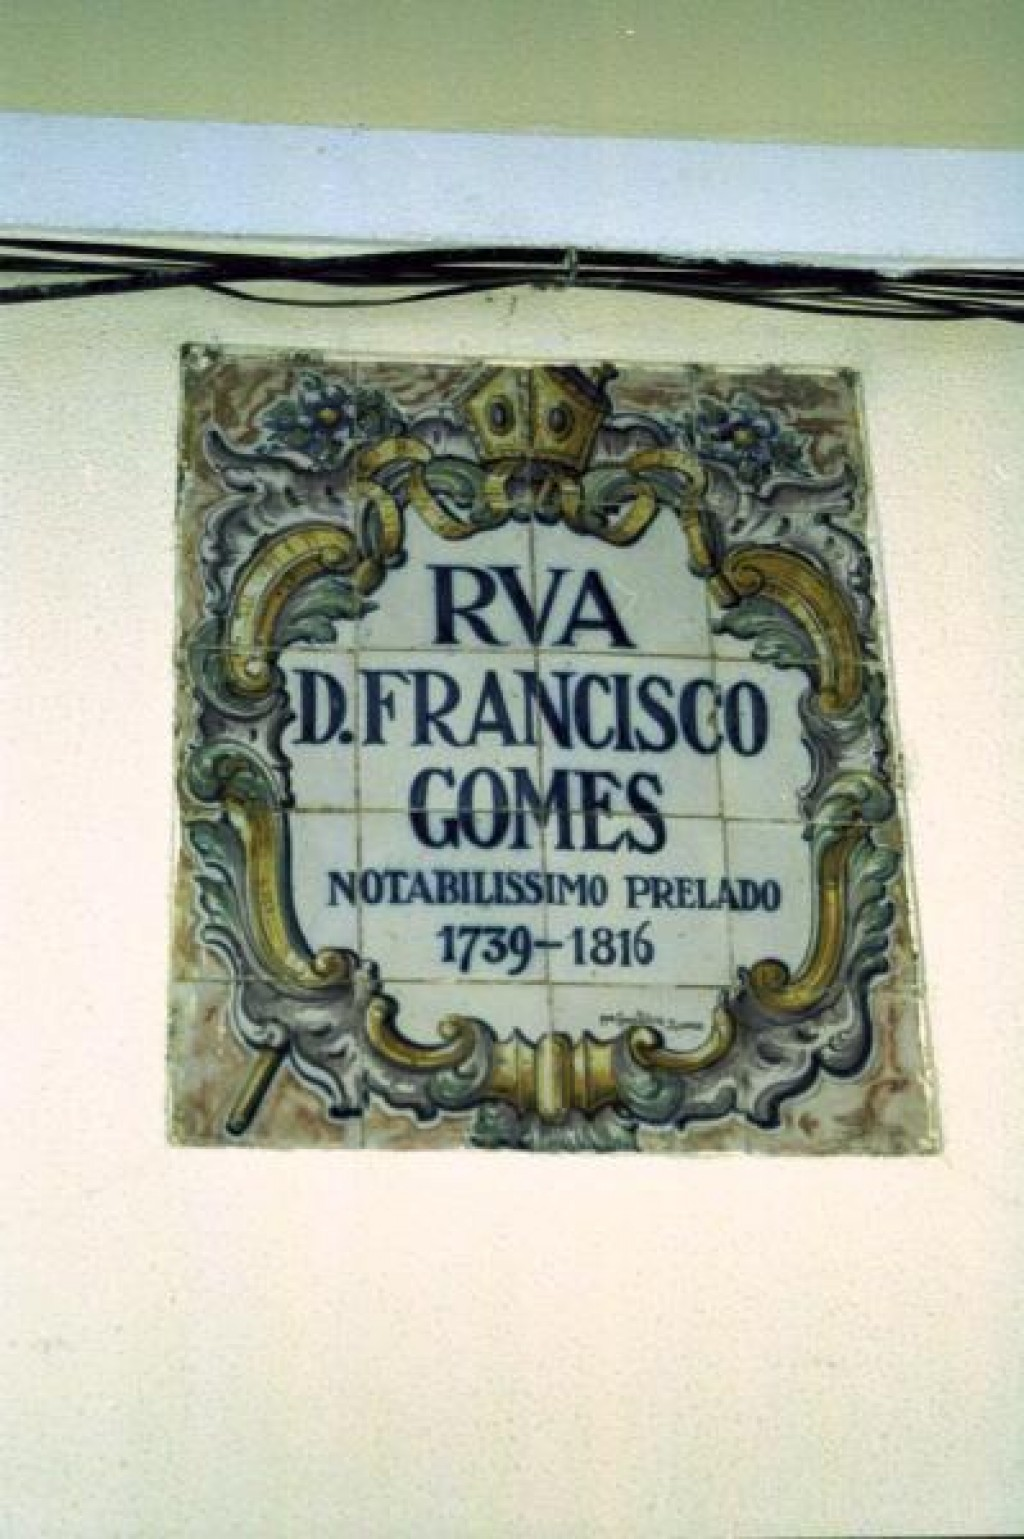 A street sign in the historic district.  Tiles are everywhere in Portugal.